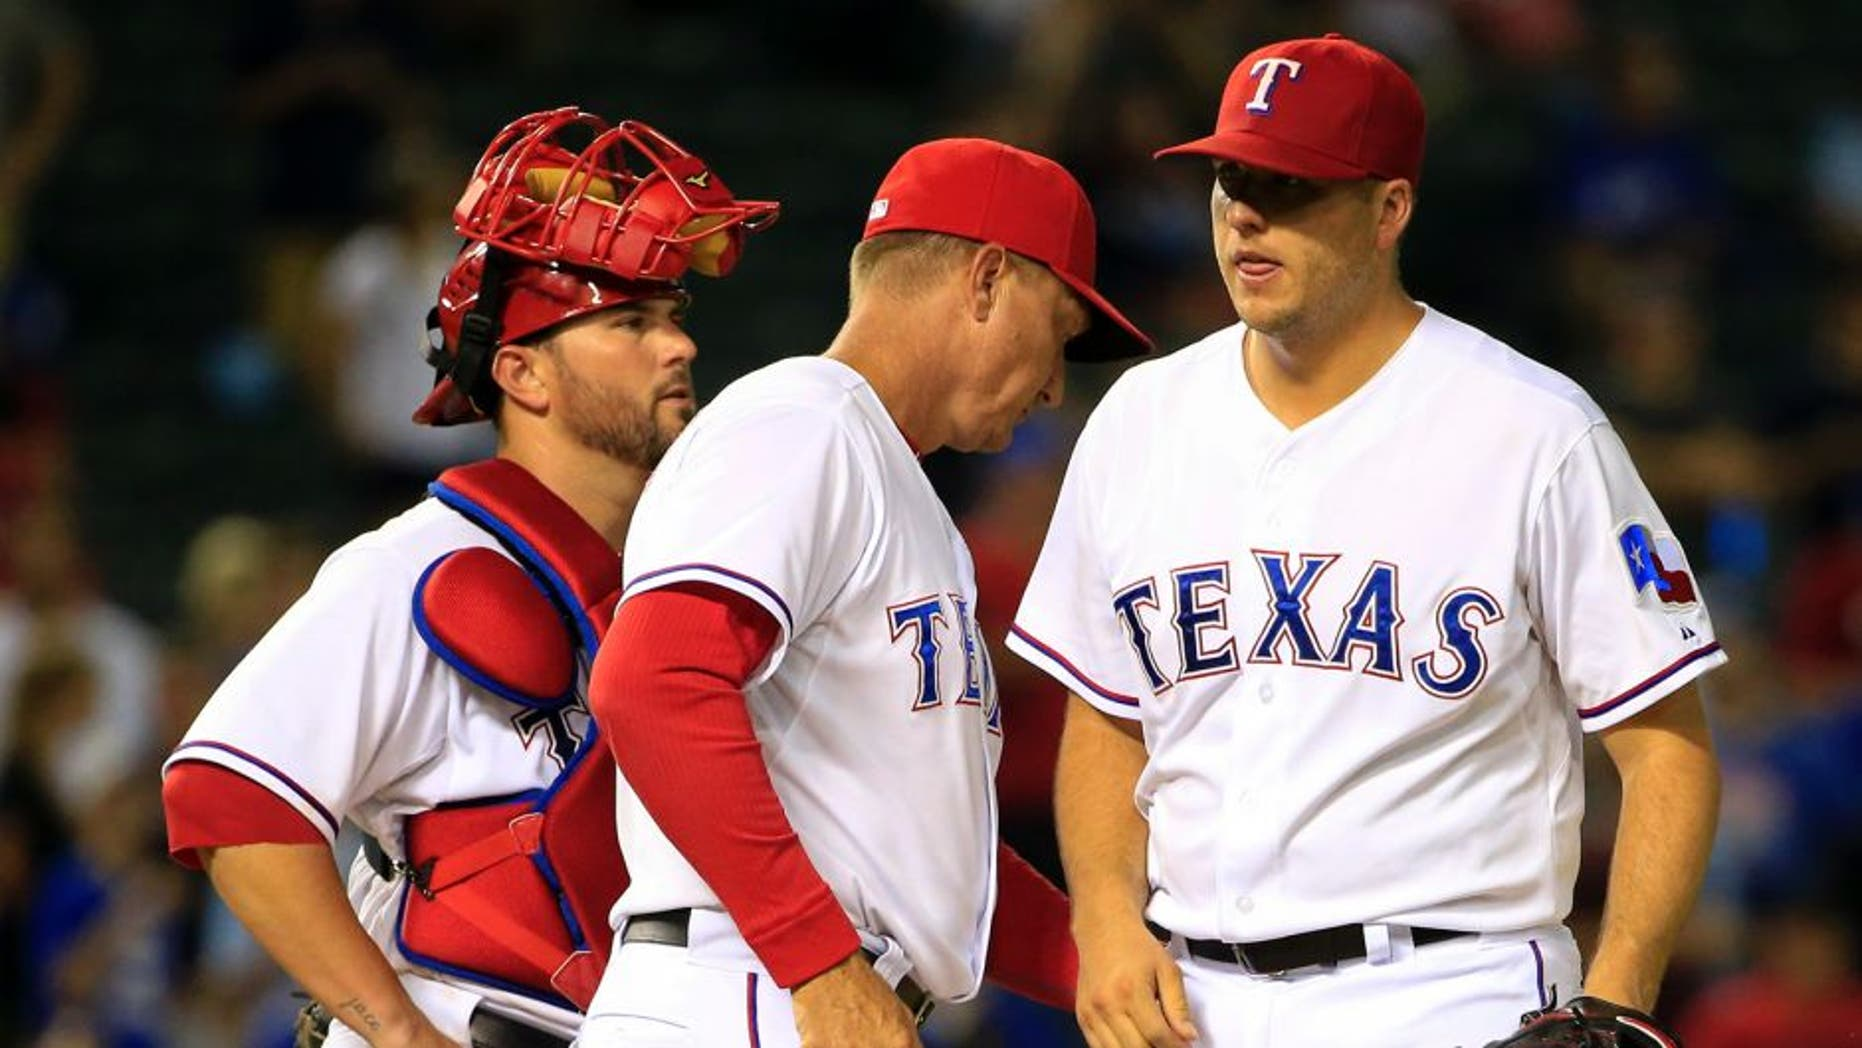 Aug 25, 2015; Arlington, TX, USA; Texas Rangers manager Jeff Banister (middle) takes out relief pitcher Shawn Tolleson (37) during the ninth inning against the Toronto Blue Jays at Globe Life Park in Arlington. Mandatory Credit: Kevin Jairaj-USA TODAY Sports